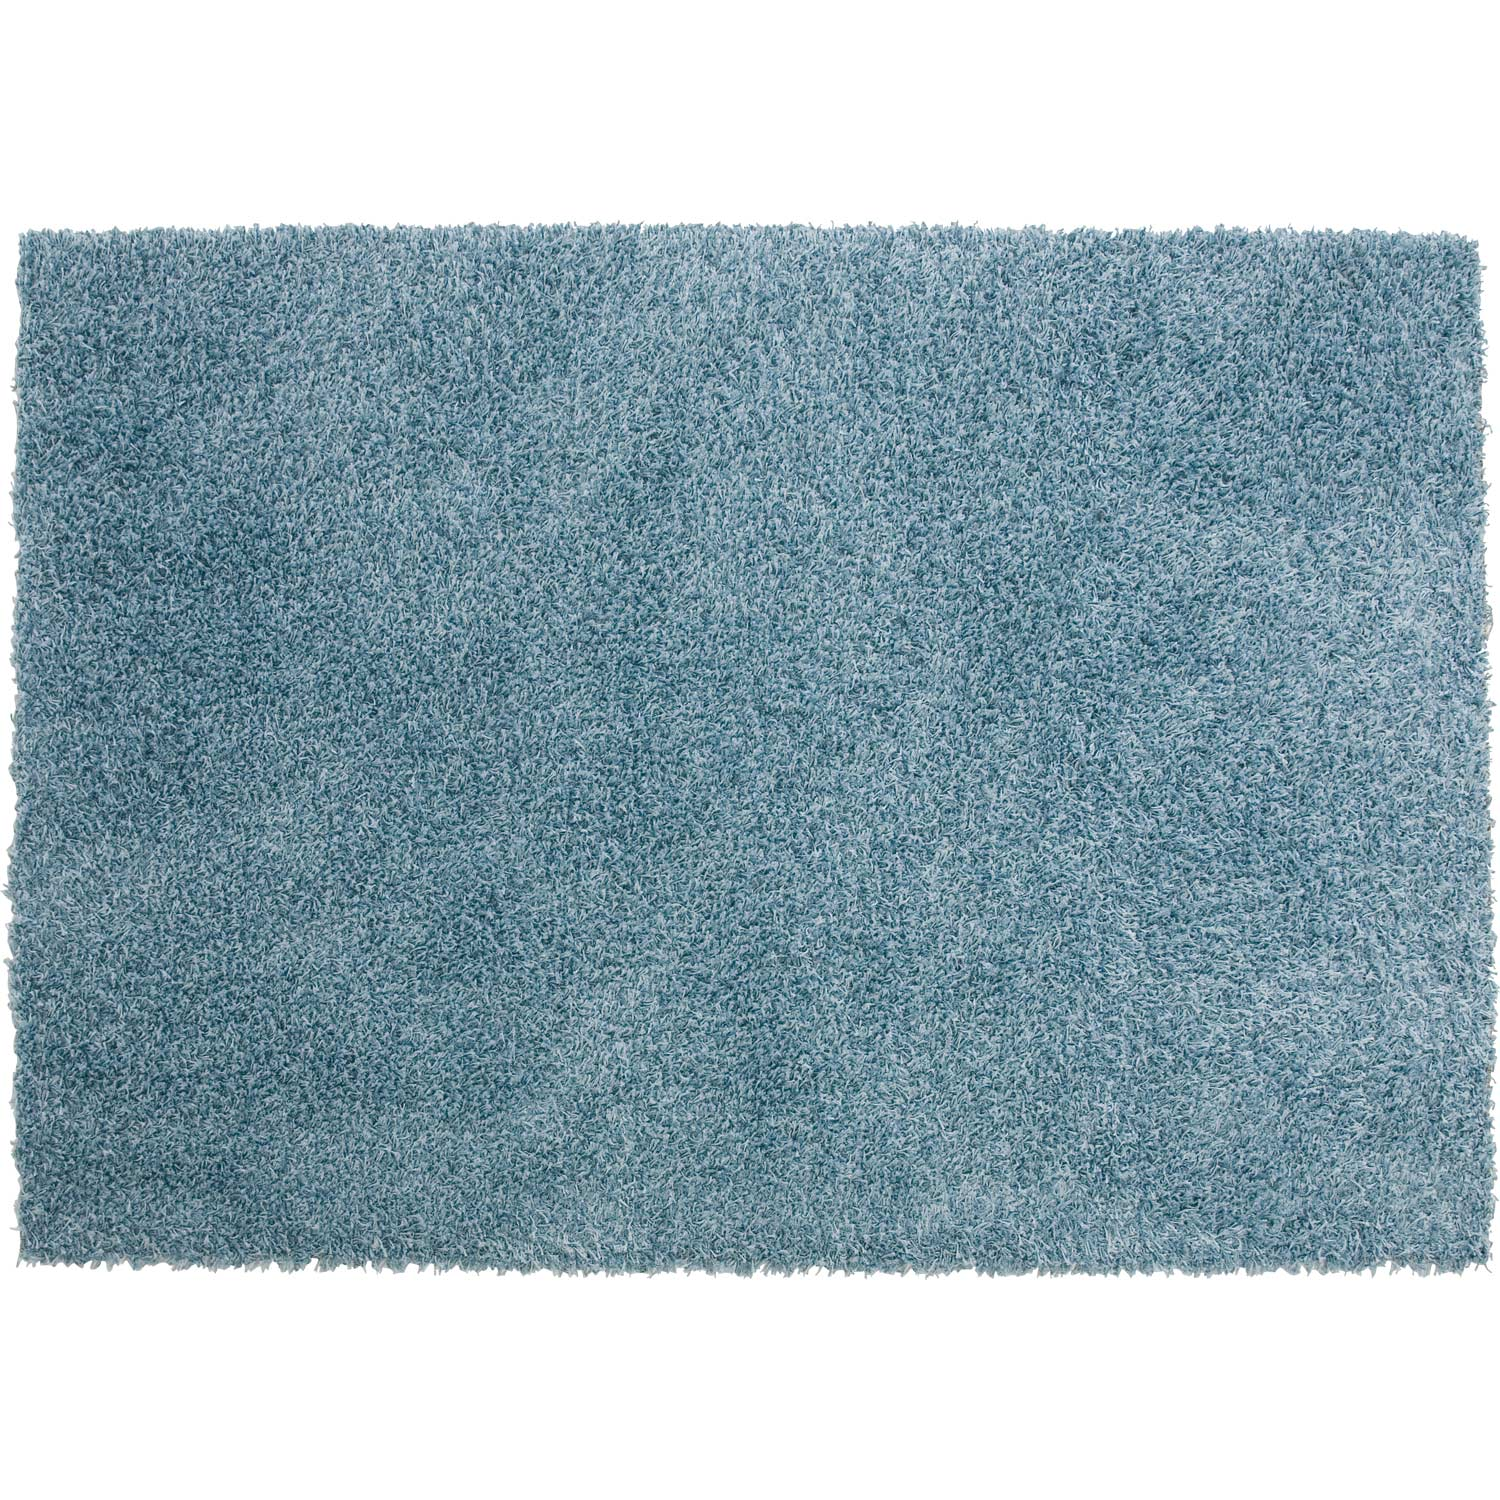 Tapis bleu shaggy pop x cm leroy merlin for Ecksofa 230 x 230